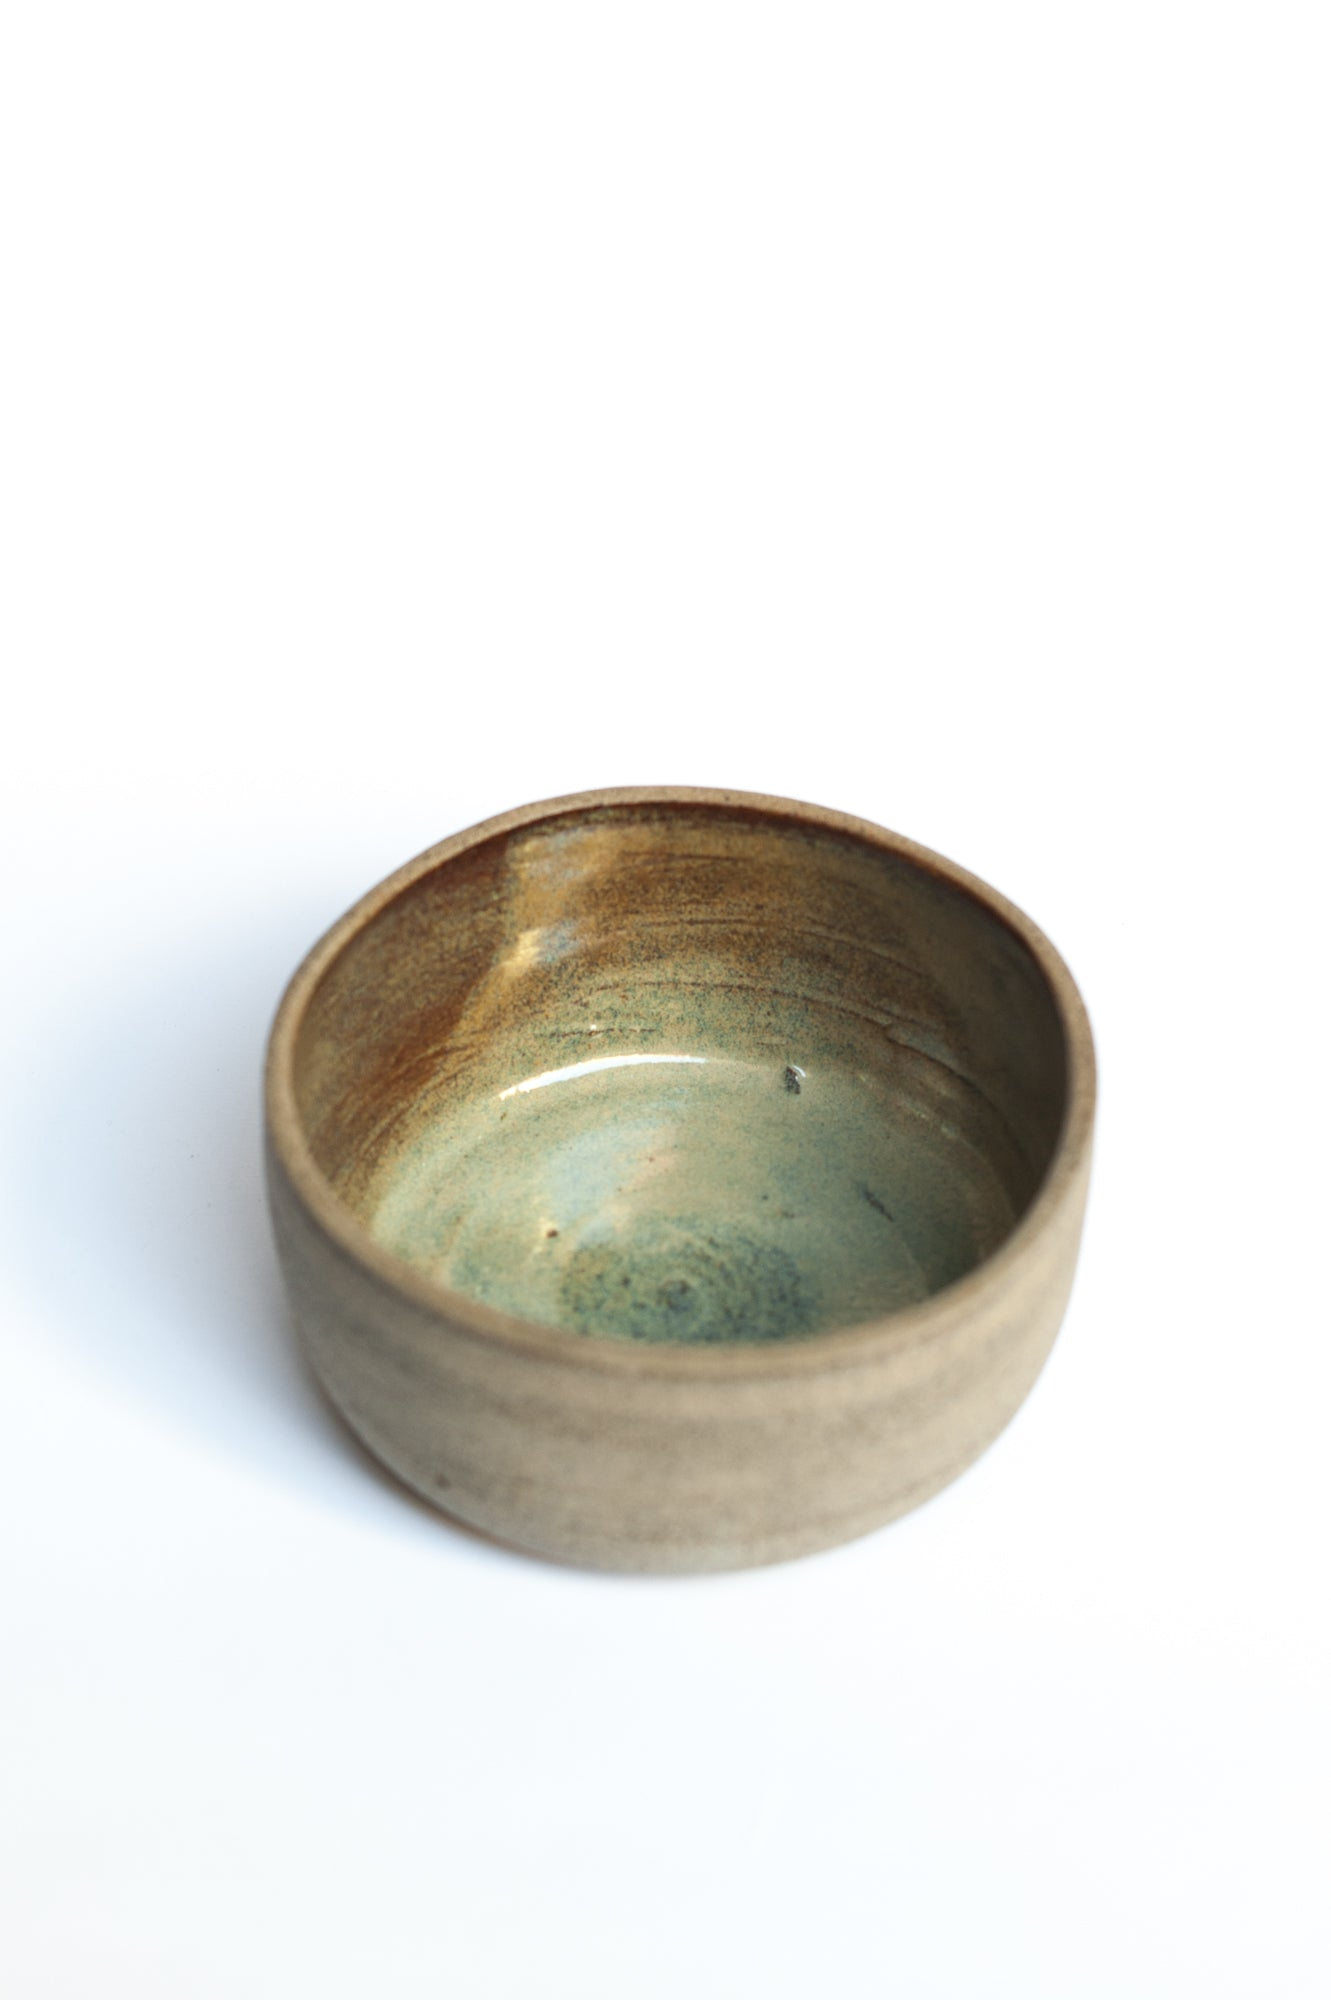 Golden-bronze bowl